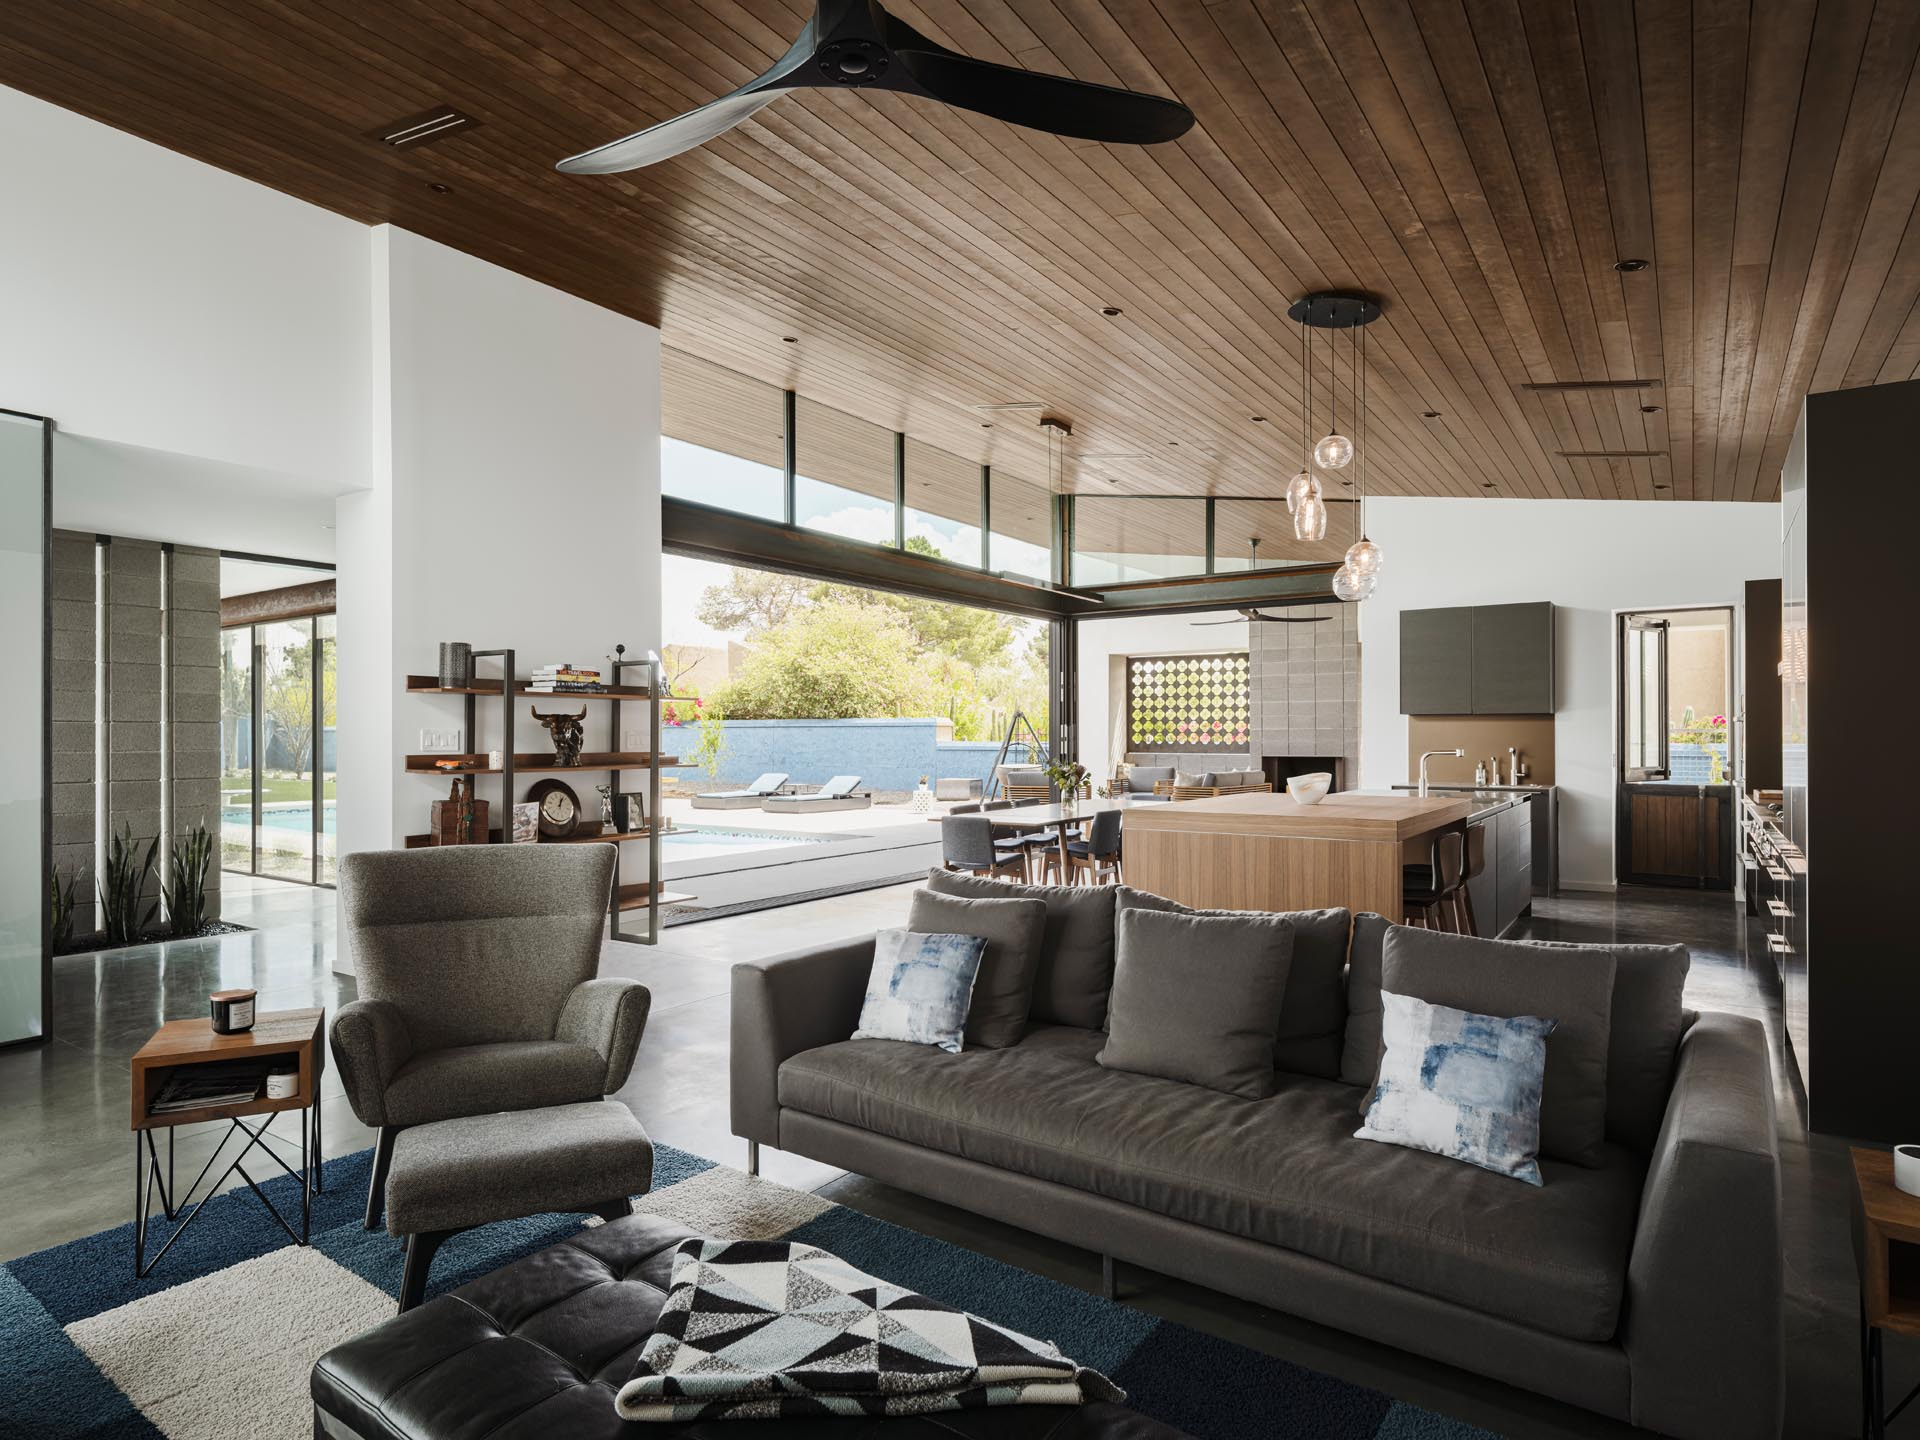 A hemlock clad ceiling spans this great room, which involves the living room, kitchen, and dining room. The ceiling is tilted upwards to take in the views.